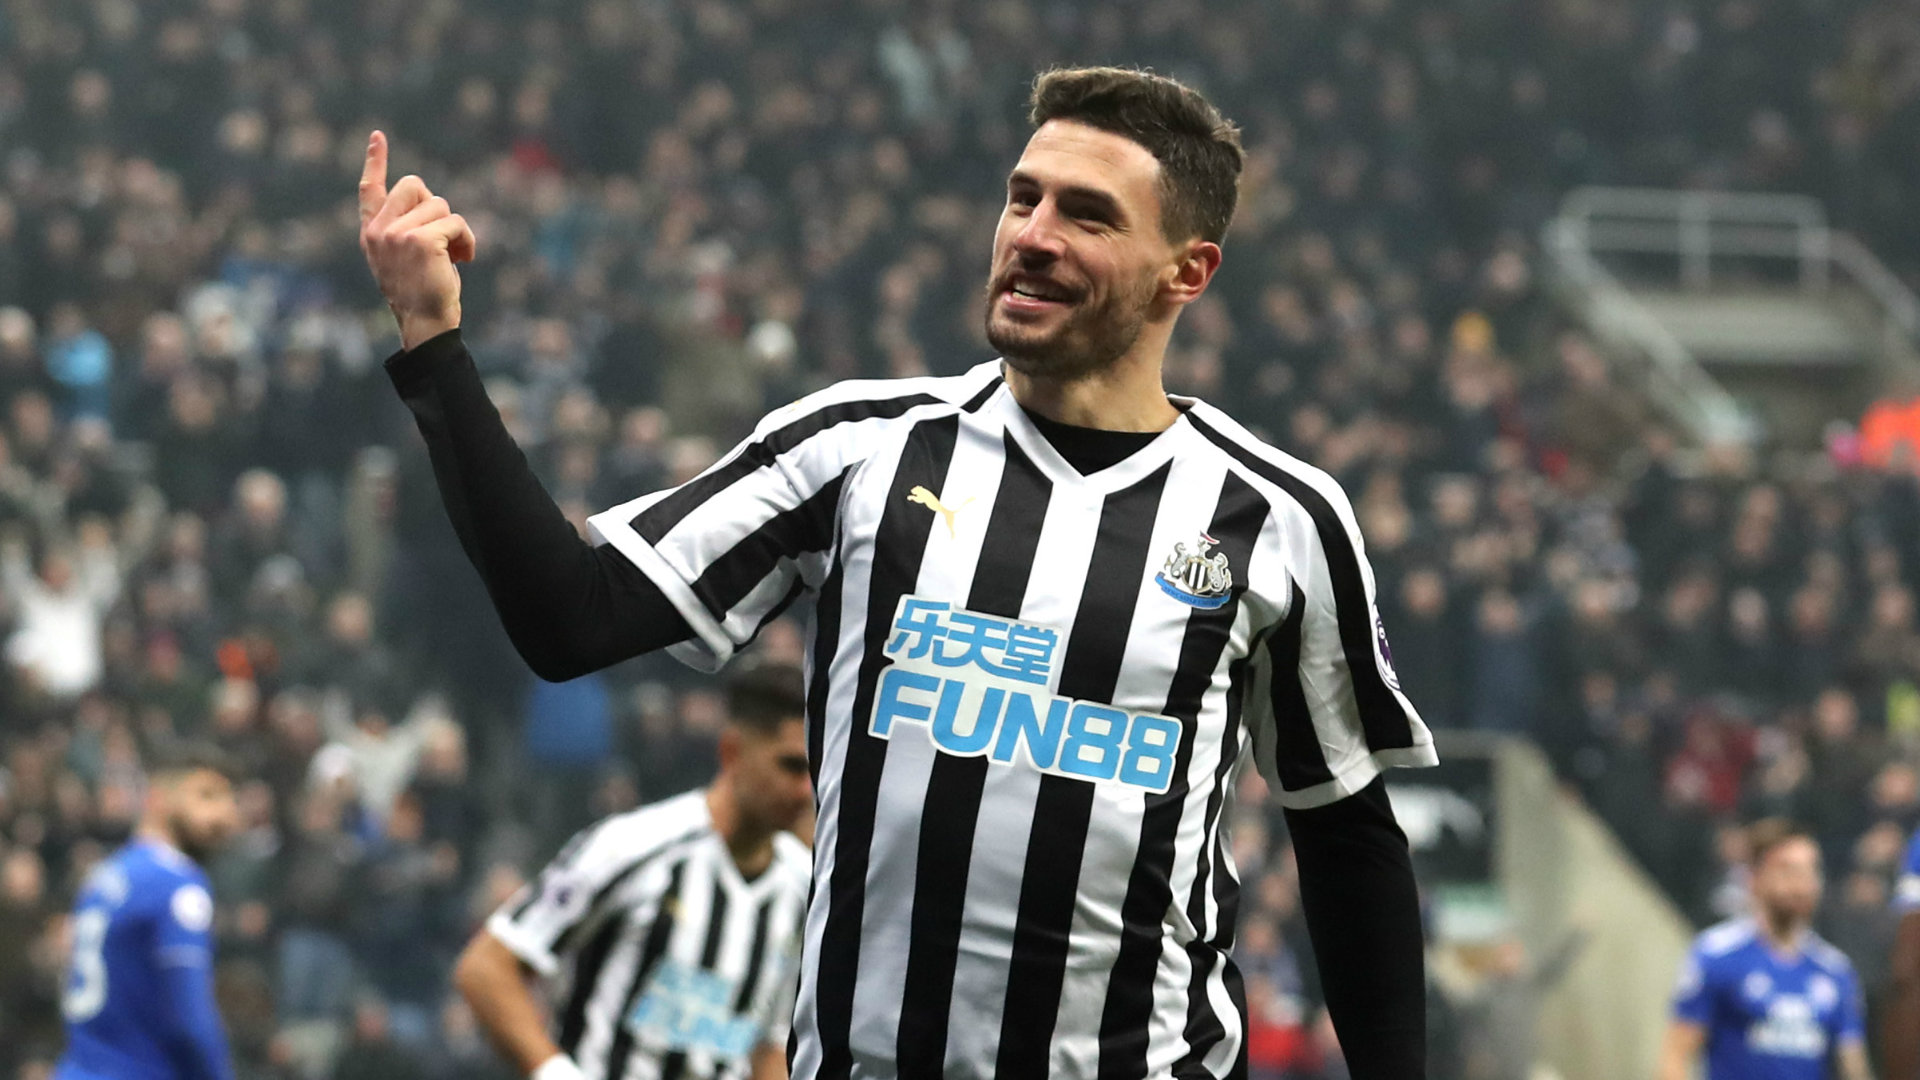 'I enjoy playing in the Premier League' - Schar happy with first season at Newcastle